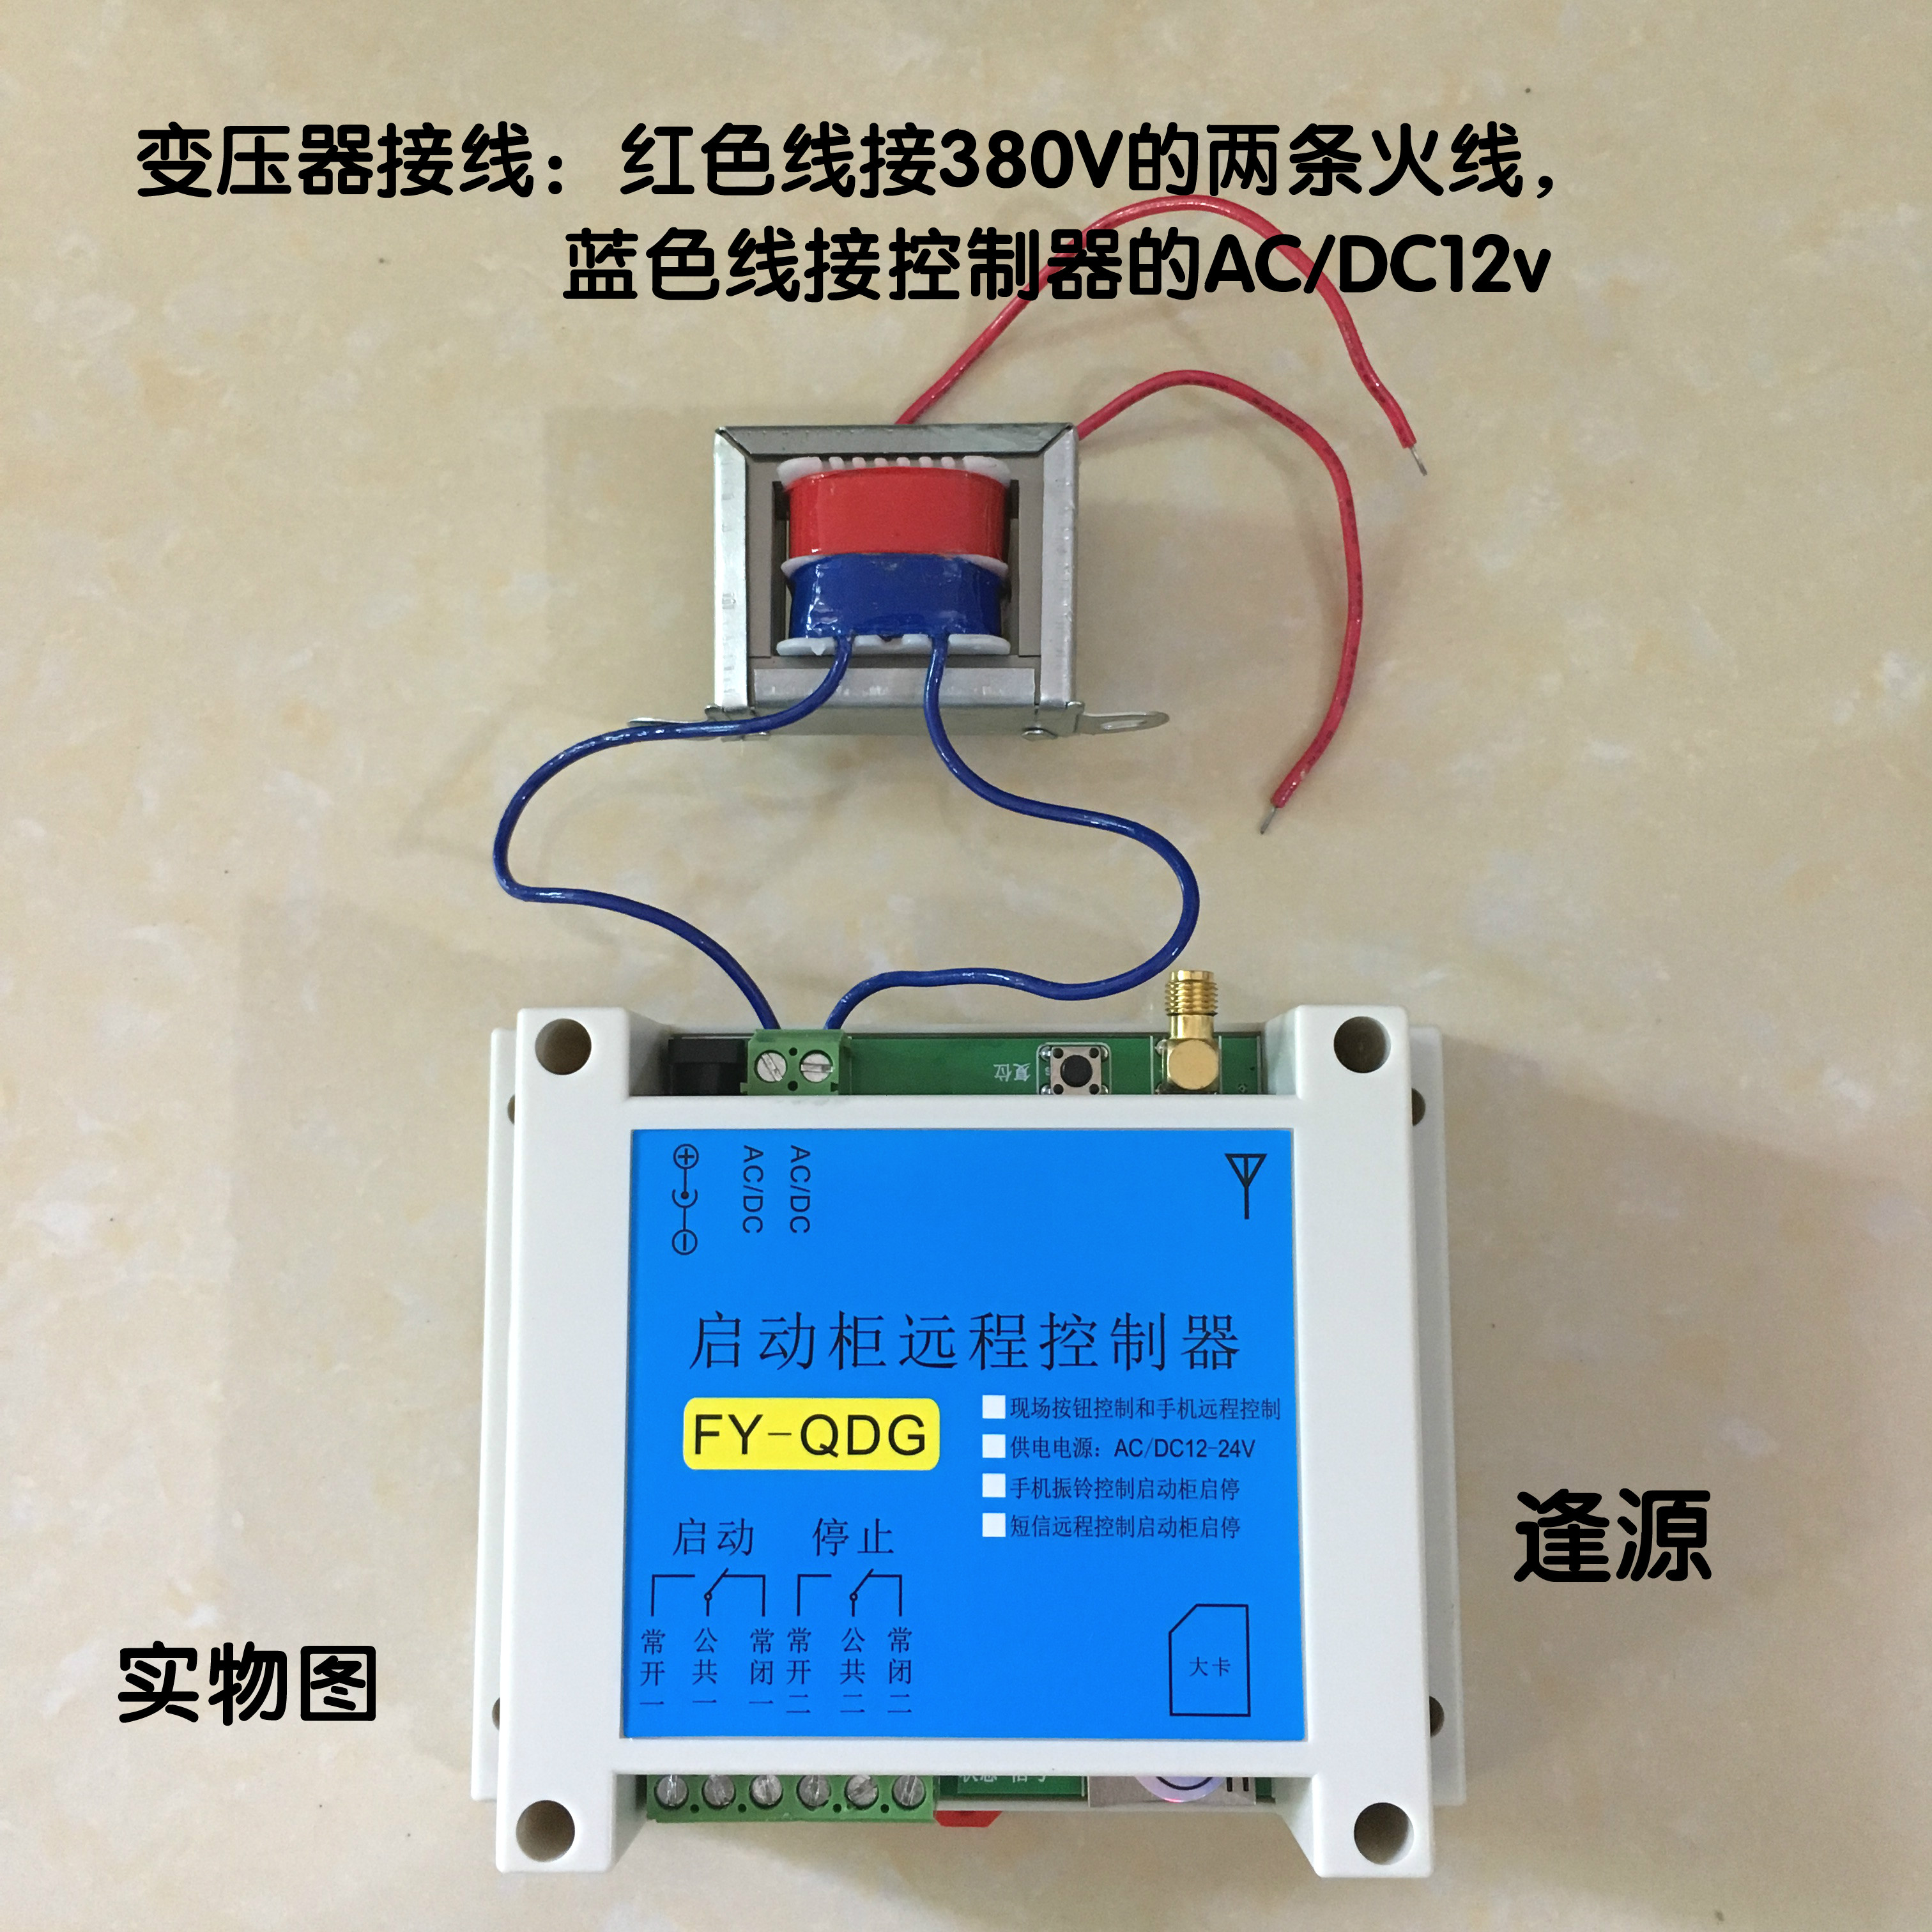 Usd 1040 380v To 12v Transformer Wiring Diagram Of The Whole Circuit Together With Pool Light Lightbox Moreview Prevnext